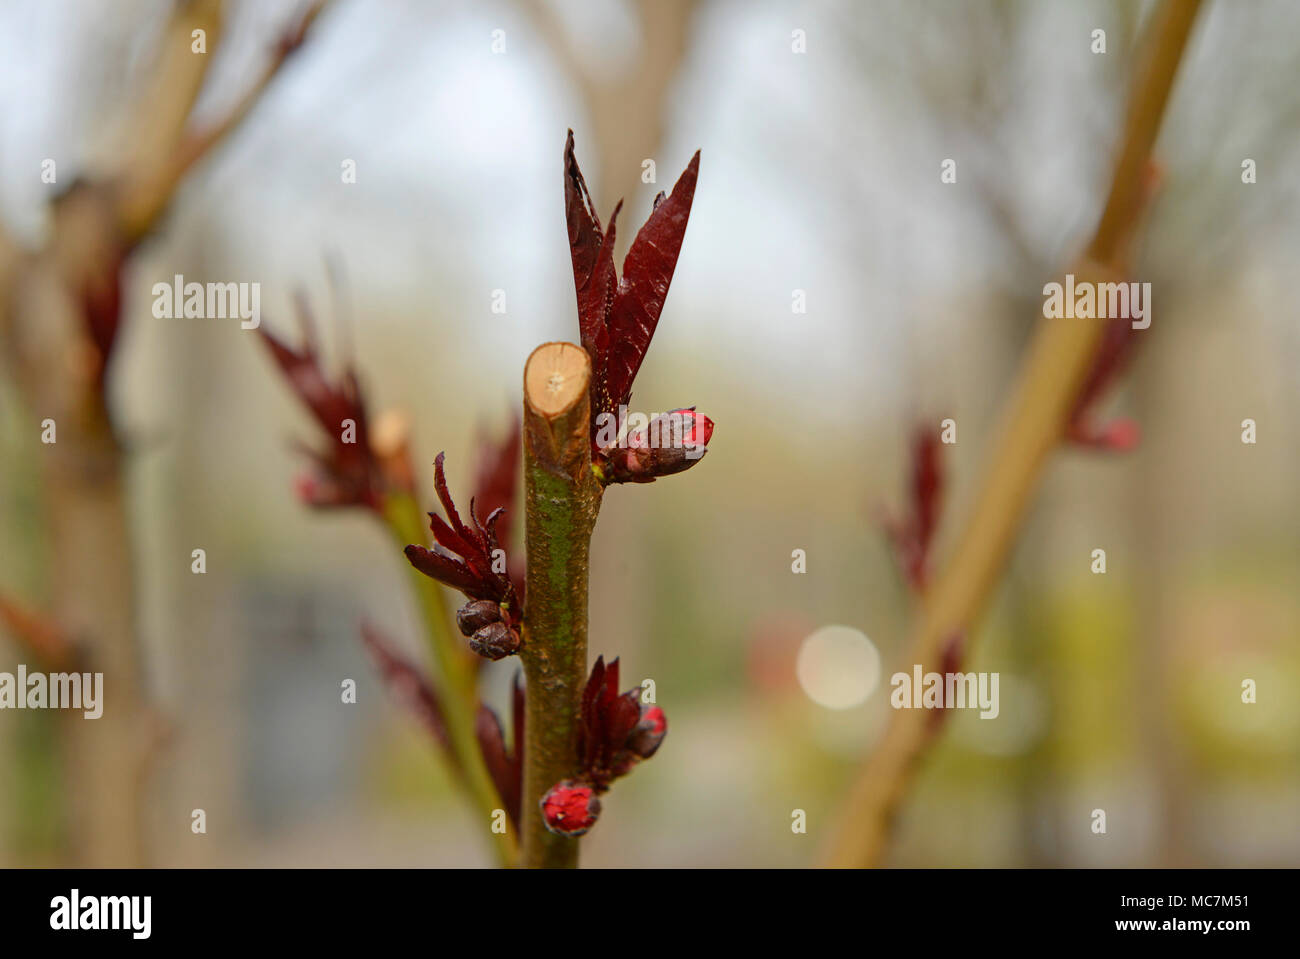 Leaves and flowers emerge from a branch tip on a shrub in Beijing, China - Stock Image